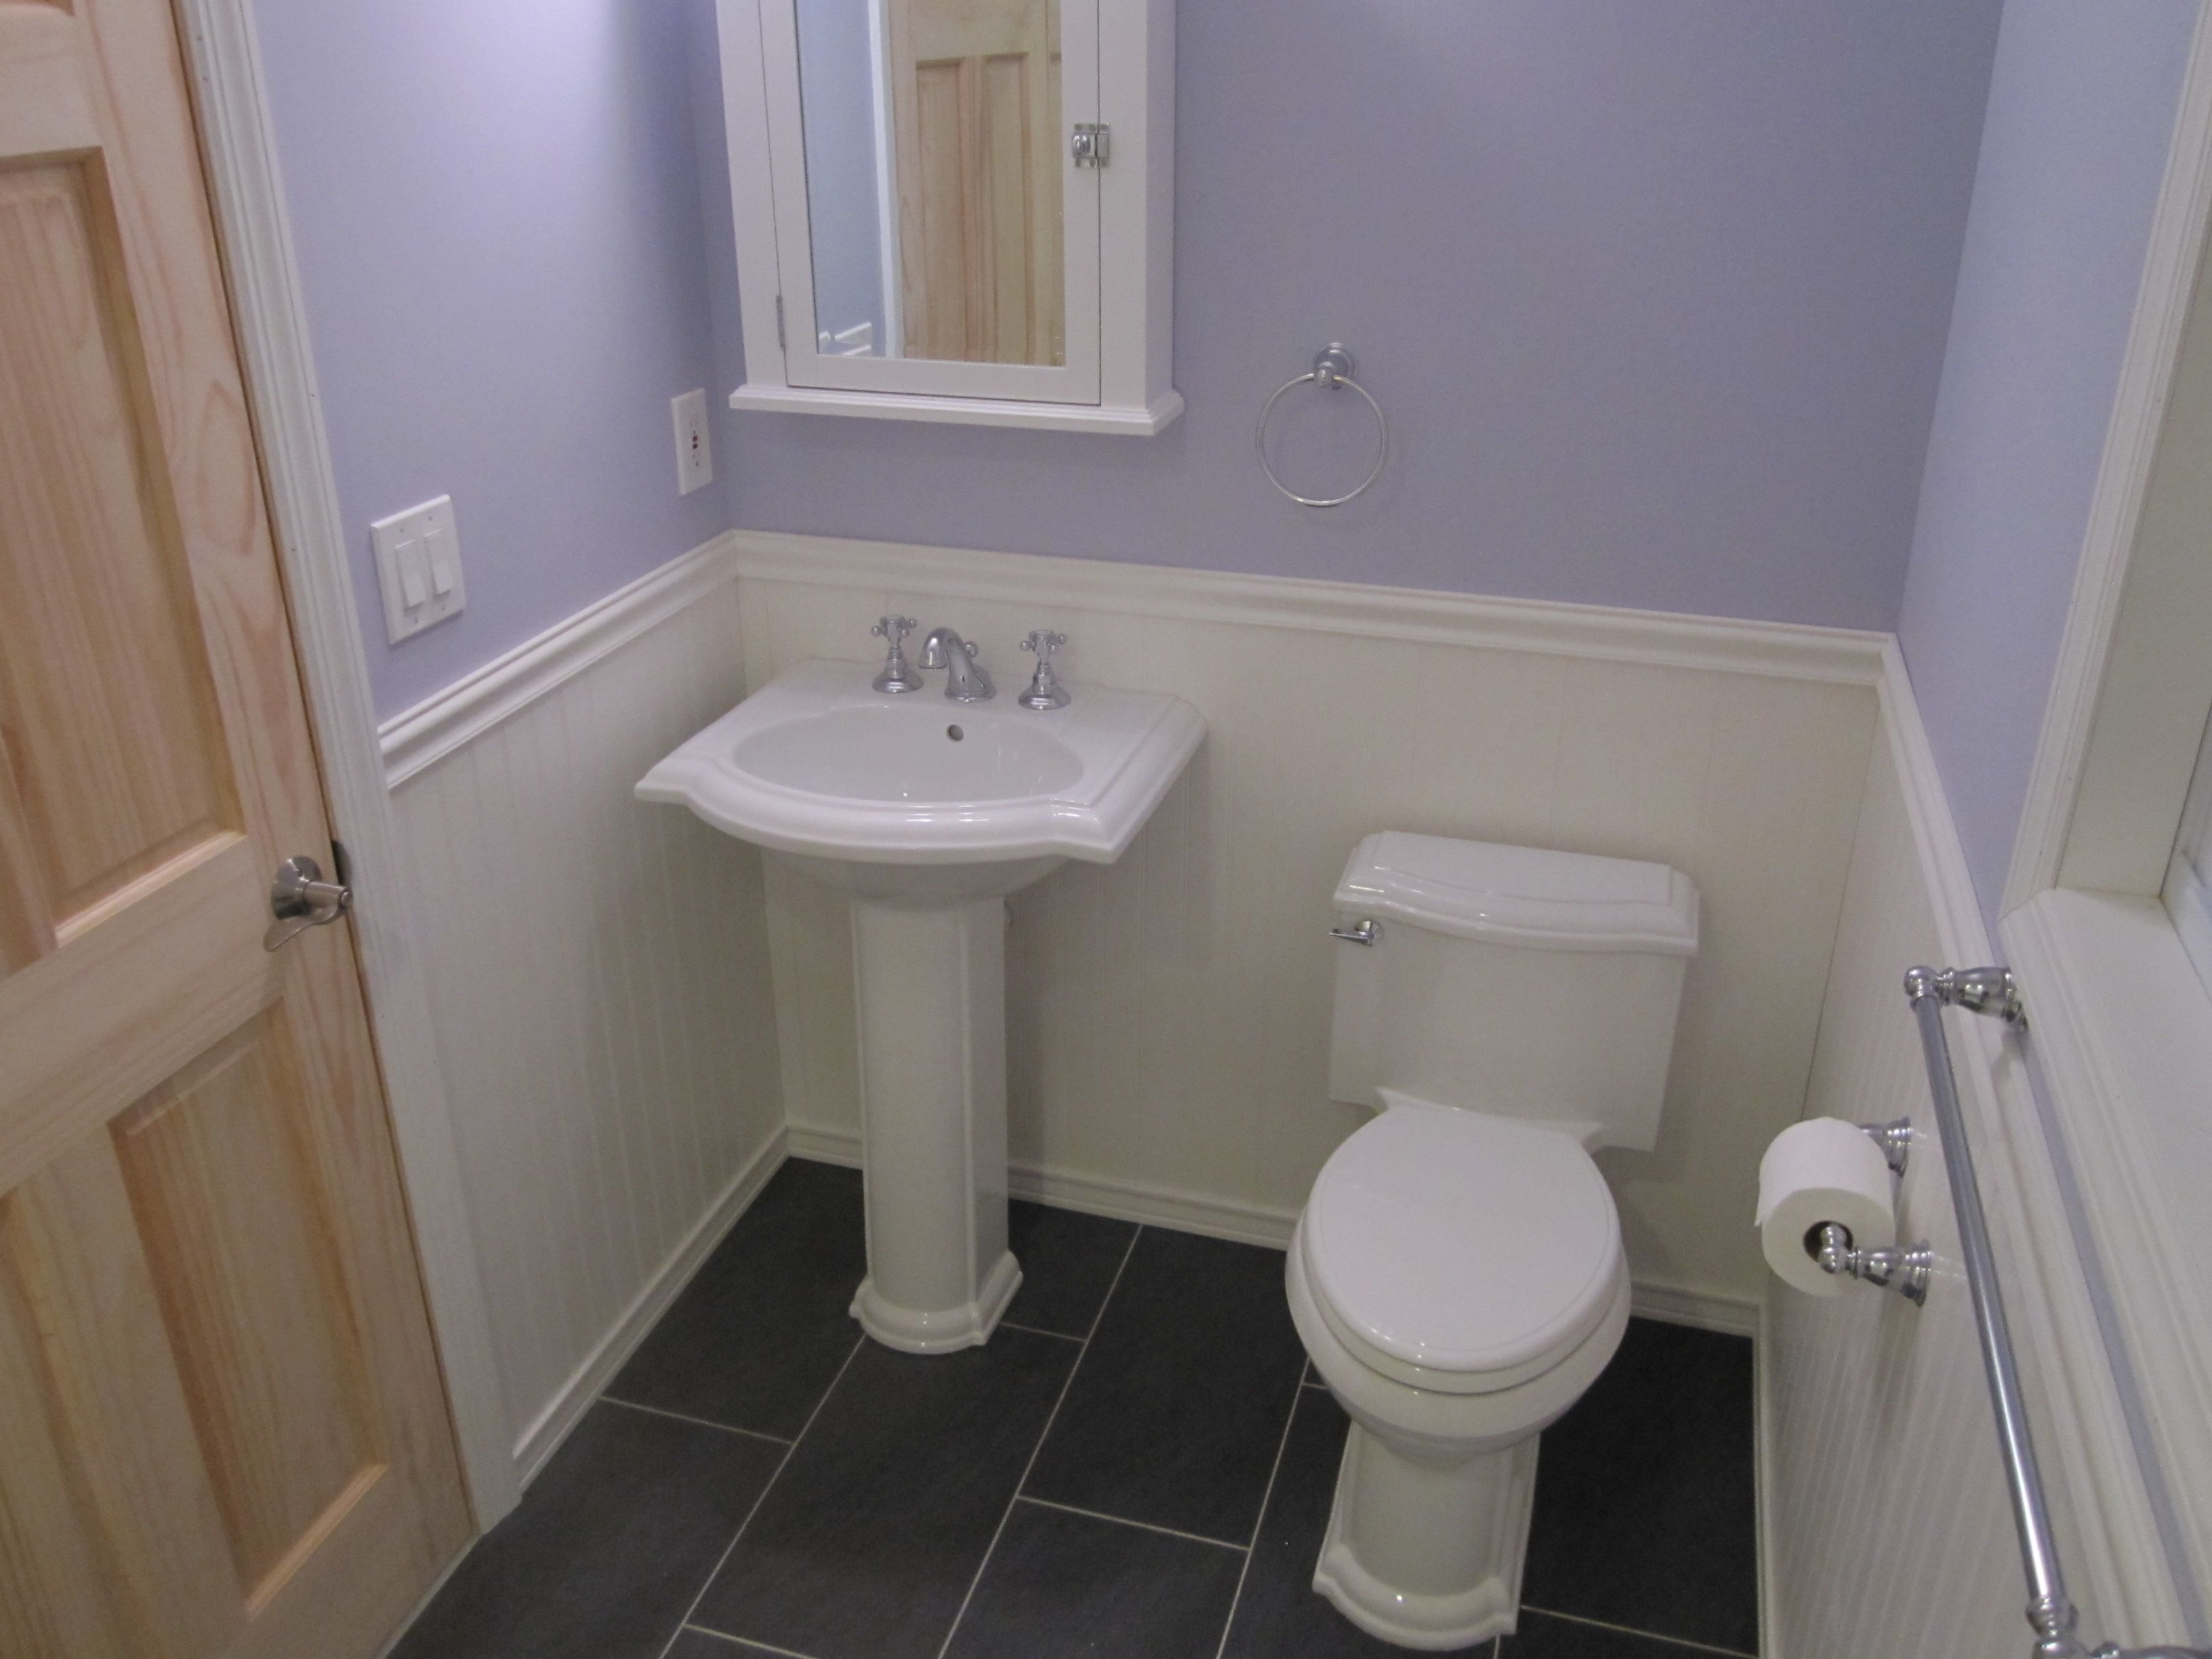 Stylish ttw wainscoting bathroom luury accessories in and